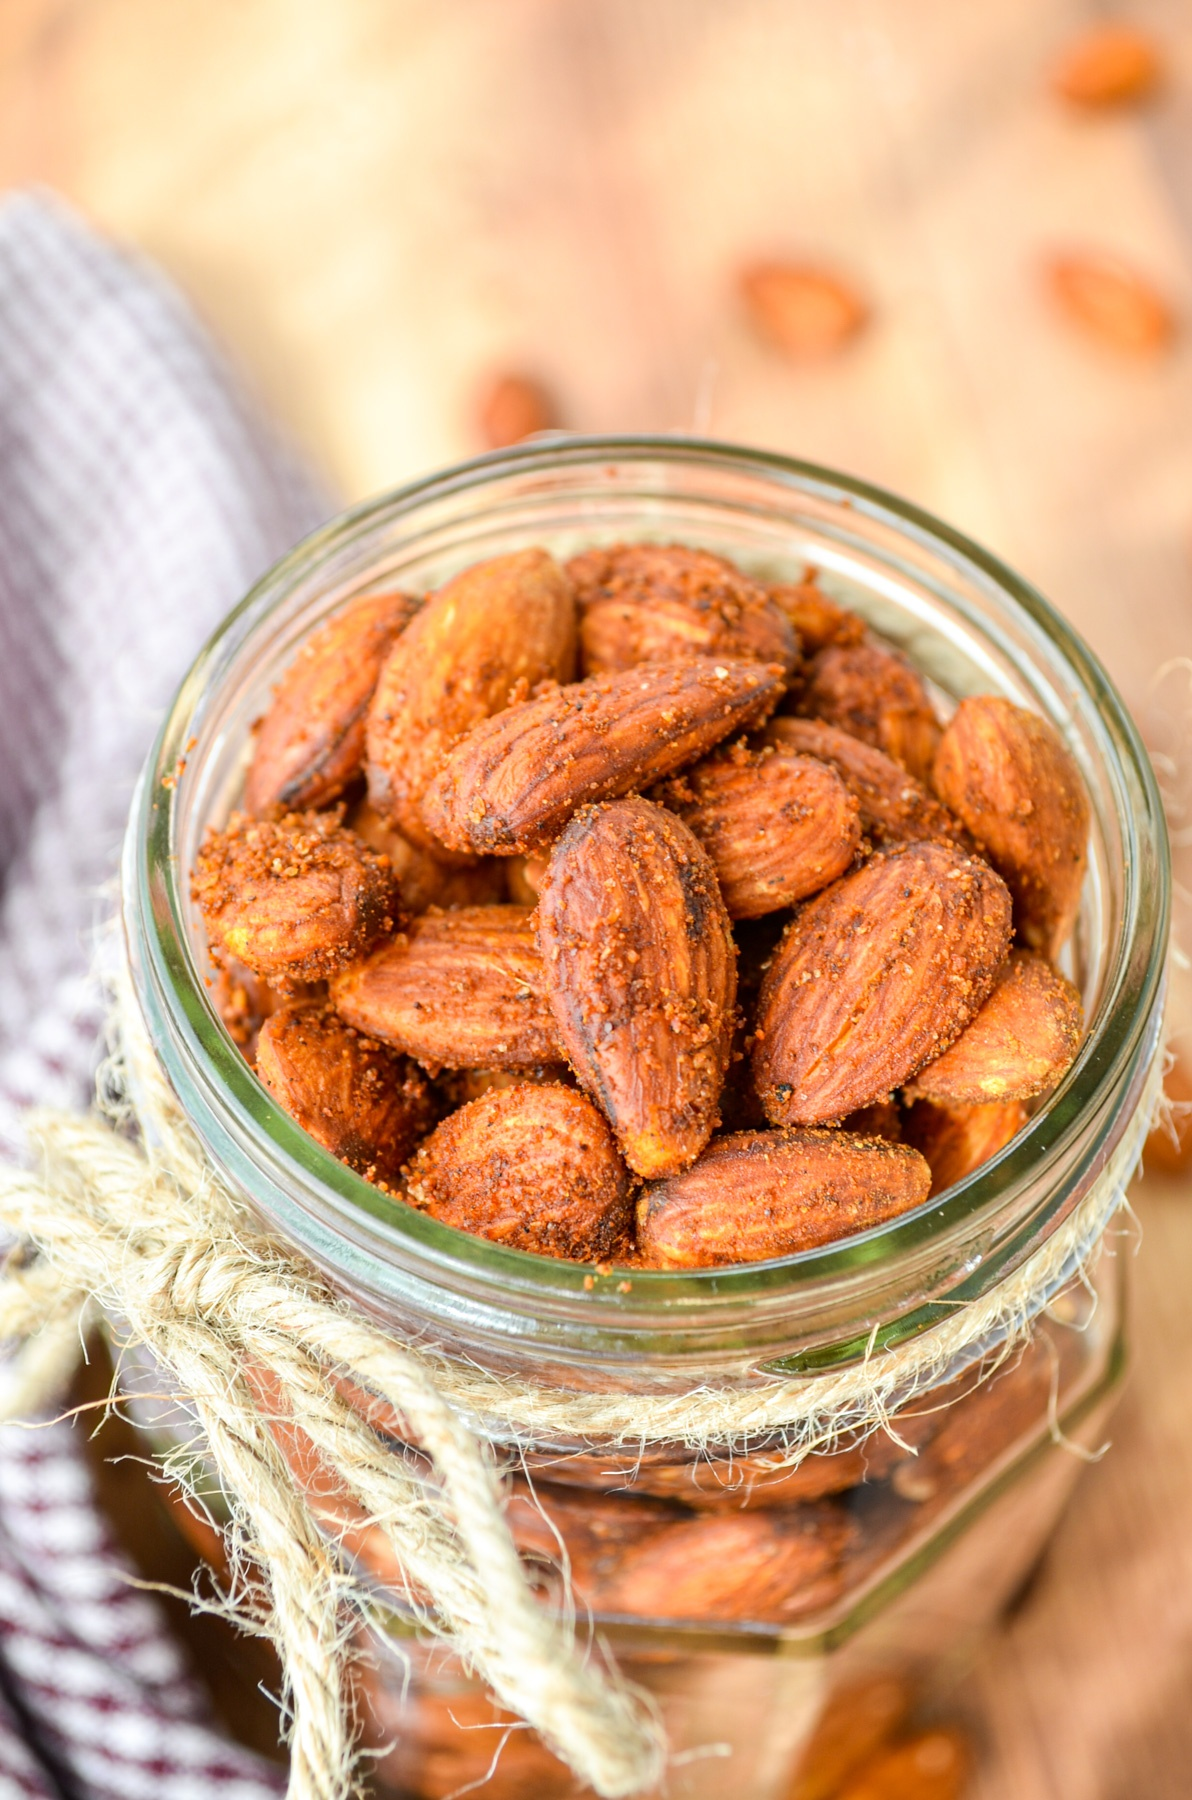 A jar full of roasted almonds, with a piece of twine tied around the rim.